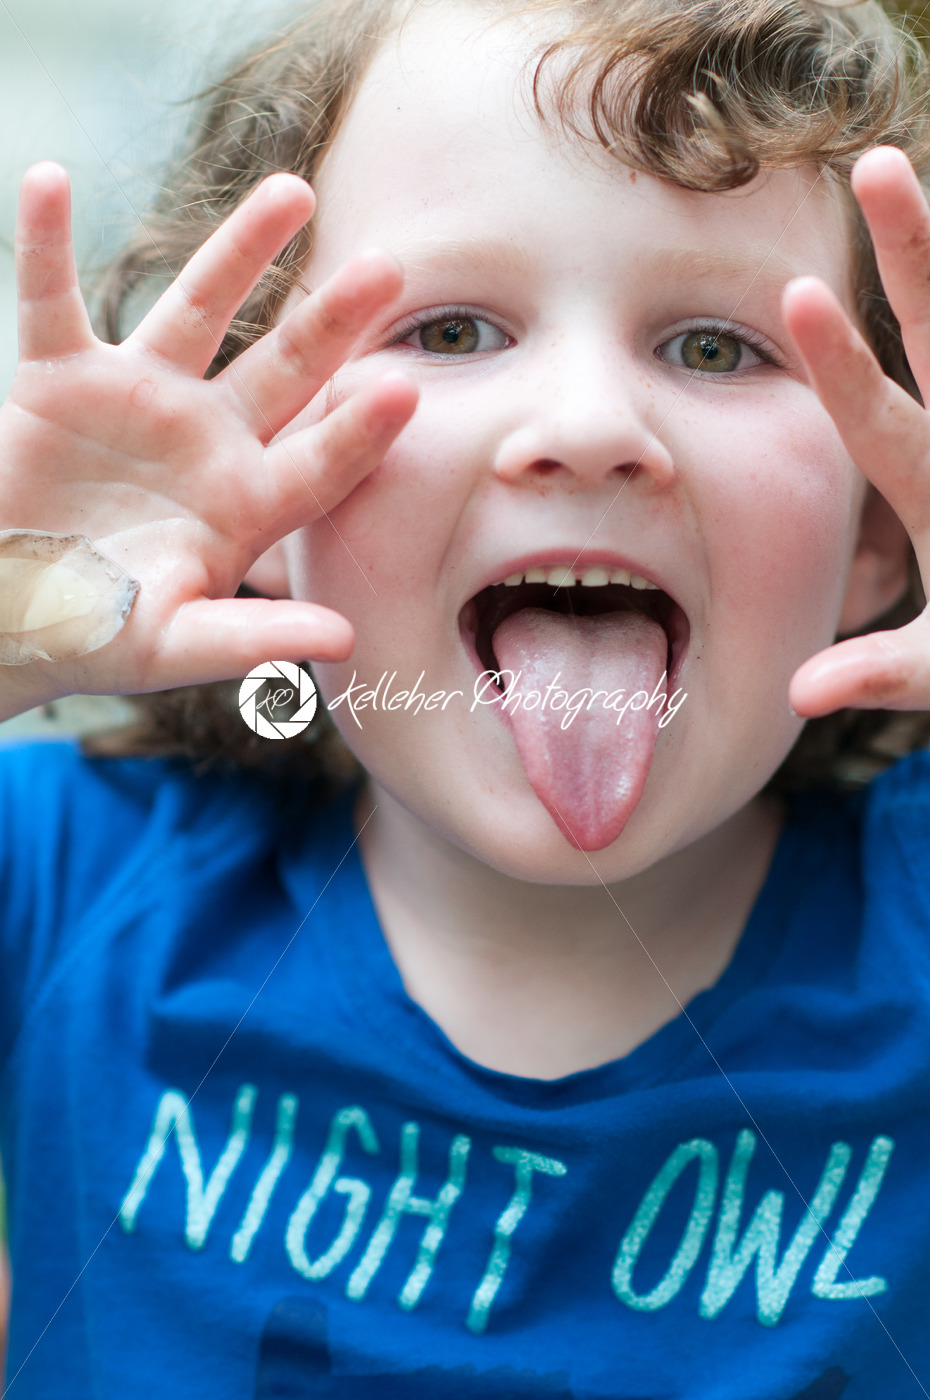 Young girl outside sticking out her tongue - Kelleher Photography Store